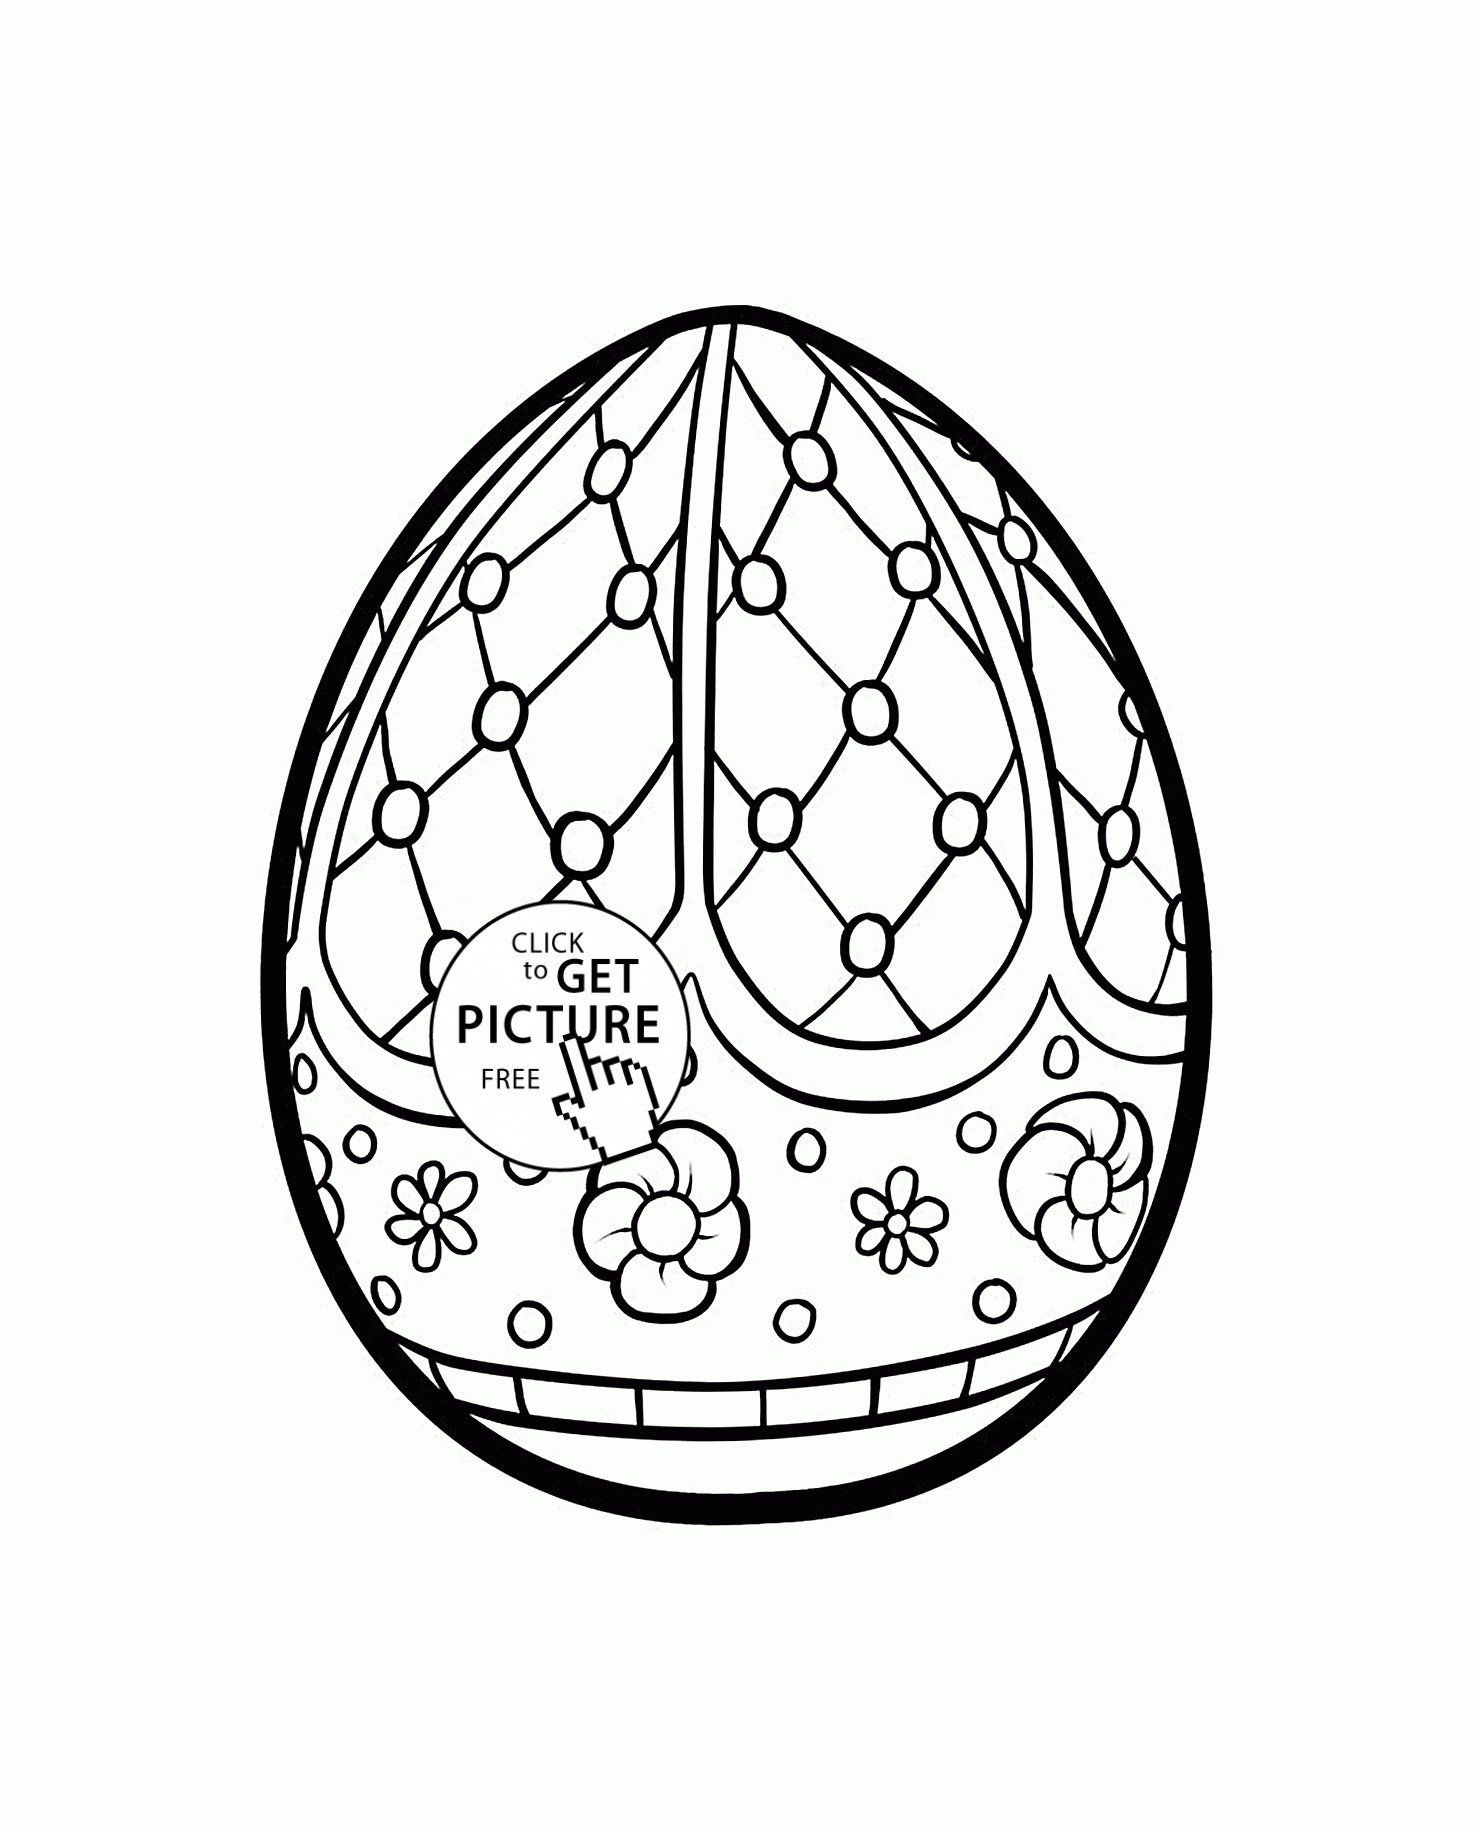 Kids Coloring Pages Printable Coloring Book Easyster Coloring Pages For Kids Dltk Easter Coloring Book Easter Coloring Sheets Easter Egg Coloring Pages